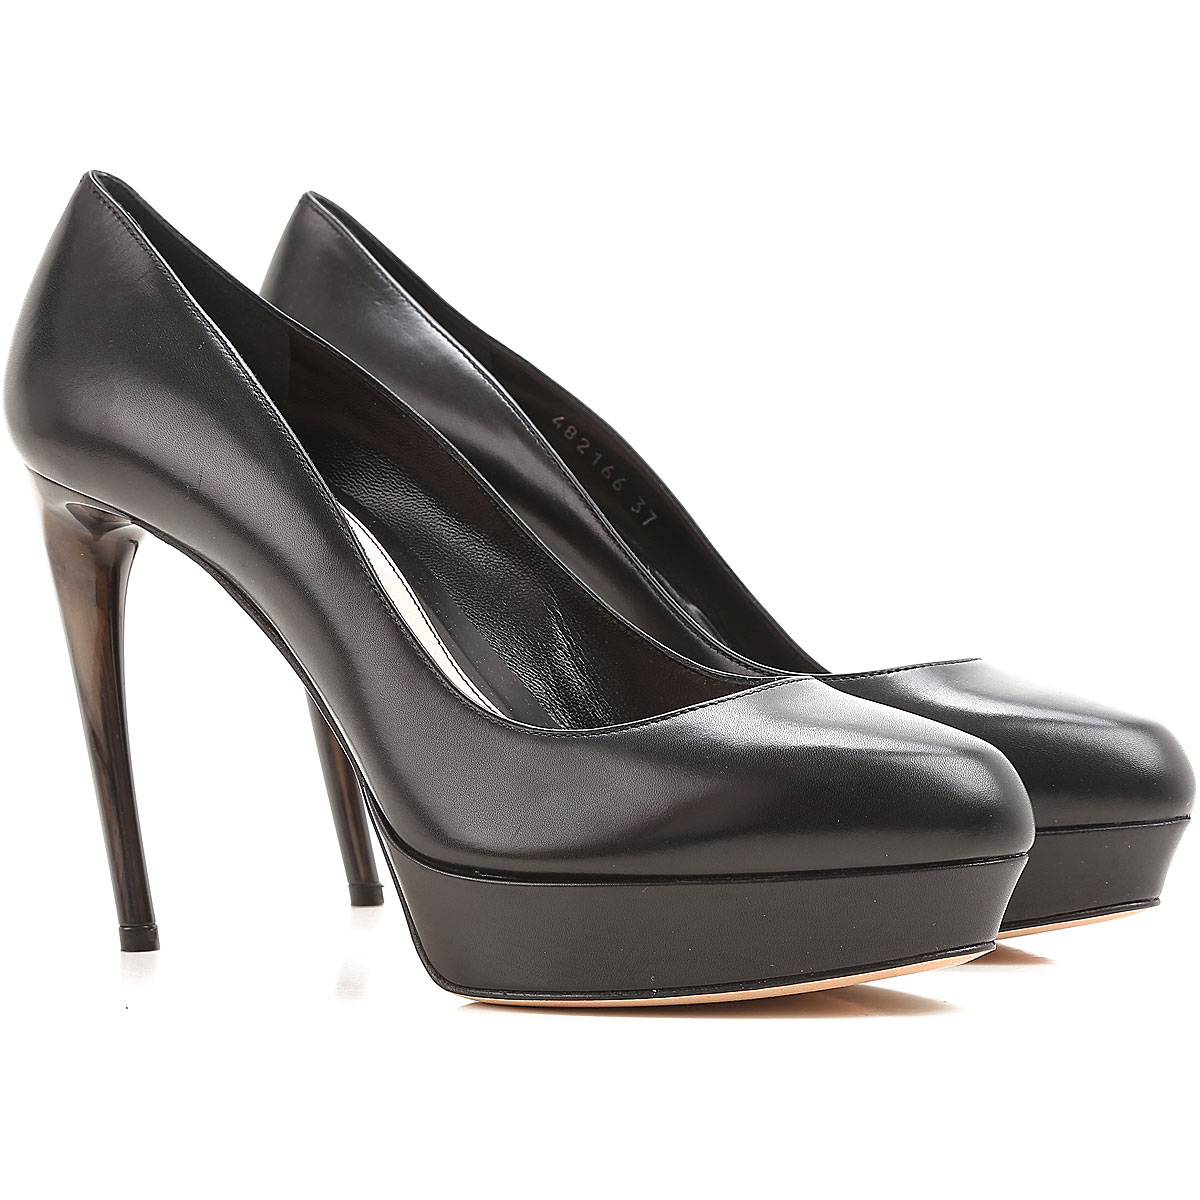 Image of Alexander McQueen Pumps & High Heels for Women On Sale in Outlet, Black, Leather, 2017, 10 5 6.5 7 8 8.5